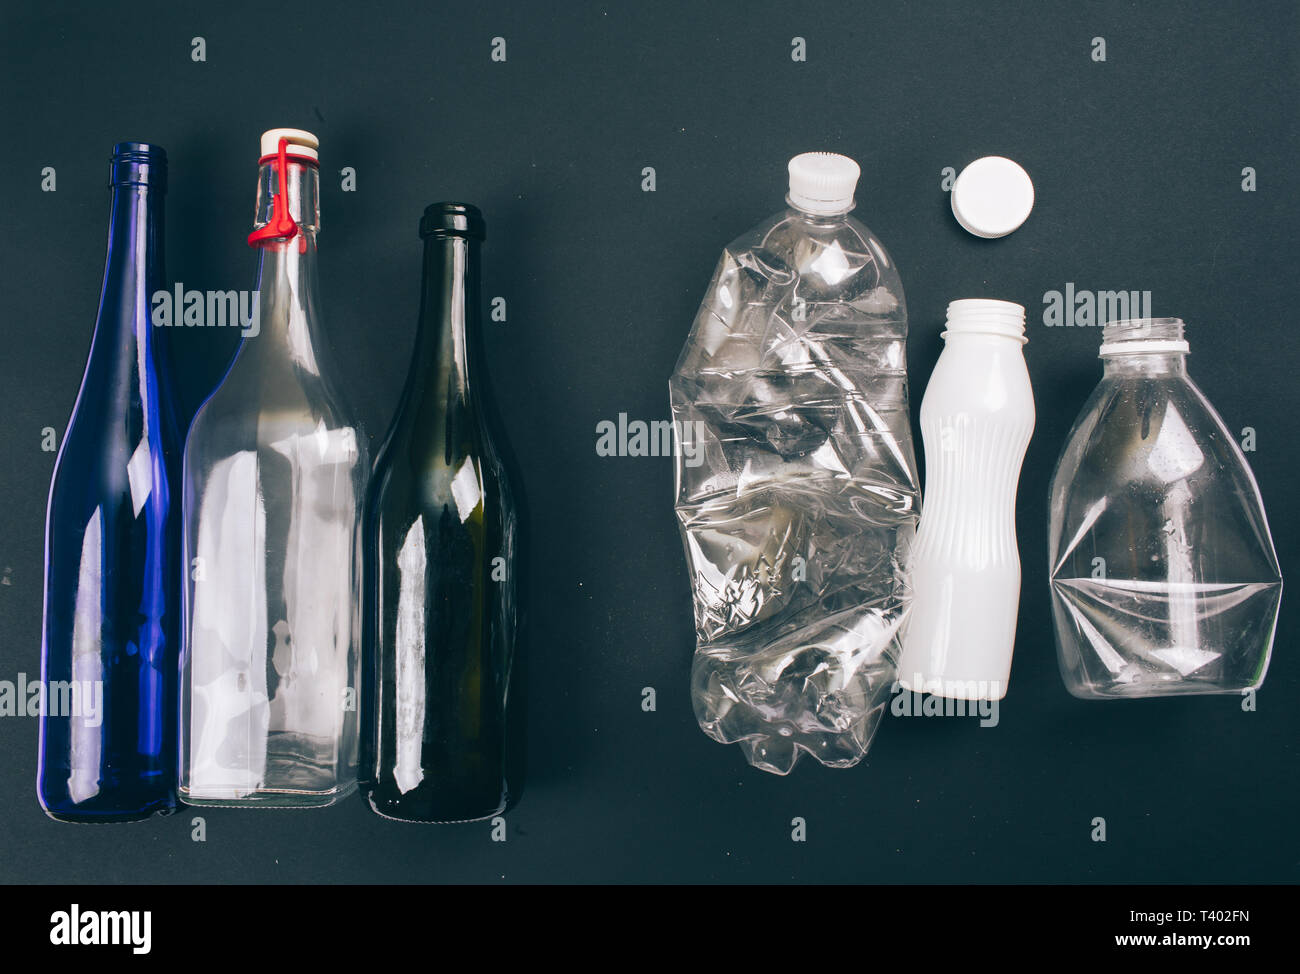 Reduce Reuse Recycle Stock Photos & Reduce Reuse Recycle